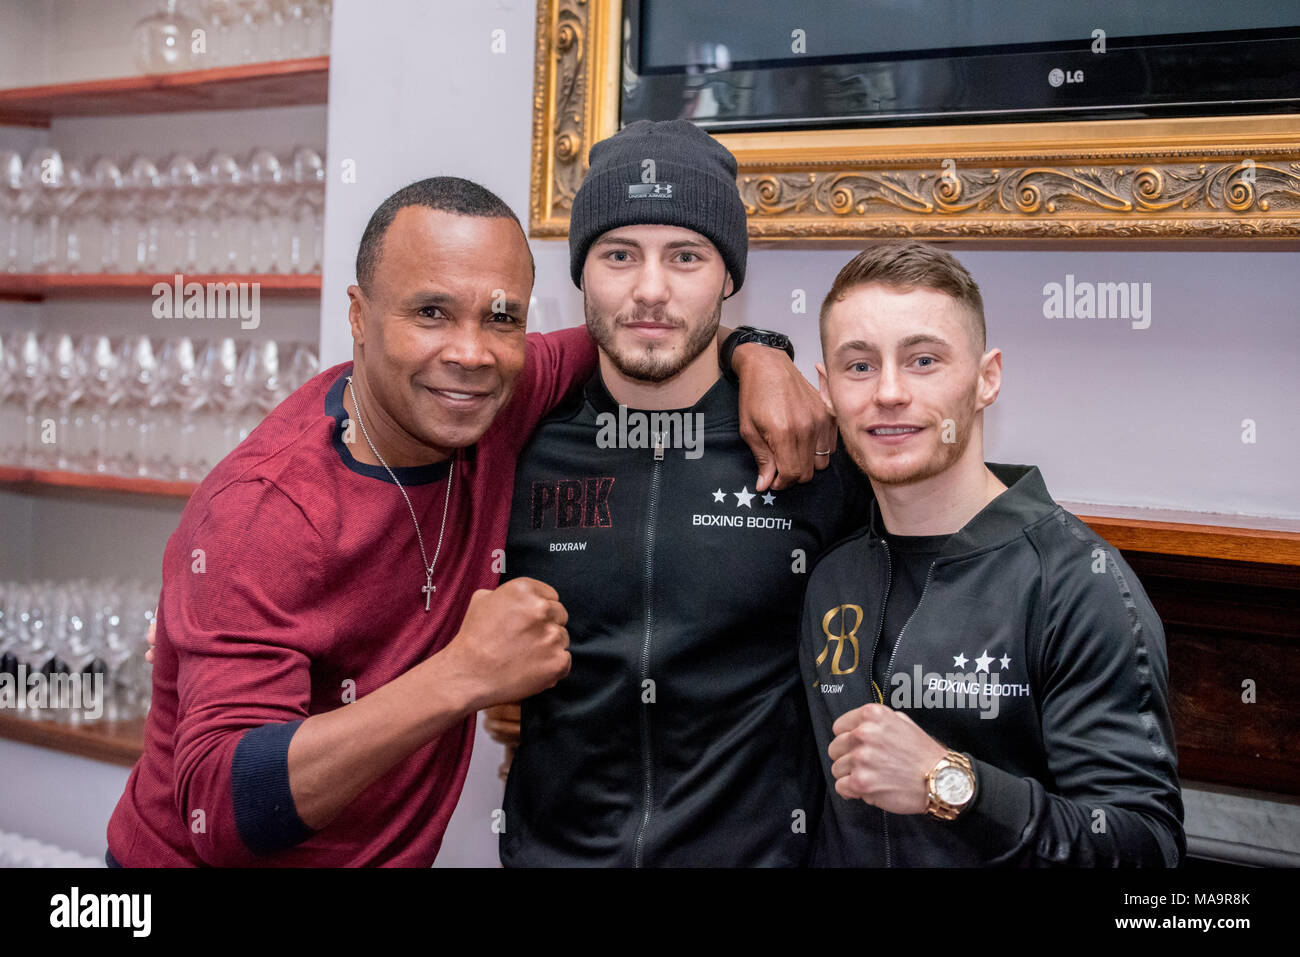 Park House restaurant, Cardiff, 31st March 2018: Josh Kelly and Ryan Burnett who are fighting on the undercard at Joshua v Parker tonight meet Sugar Ray Leonard at an event in Cardiff Credit: Andrew Dowling/Influential Photography/Alamy Live News - Stock Image